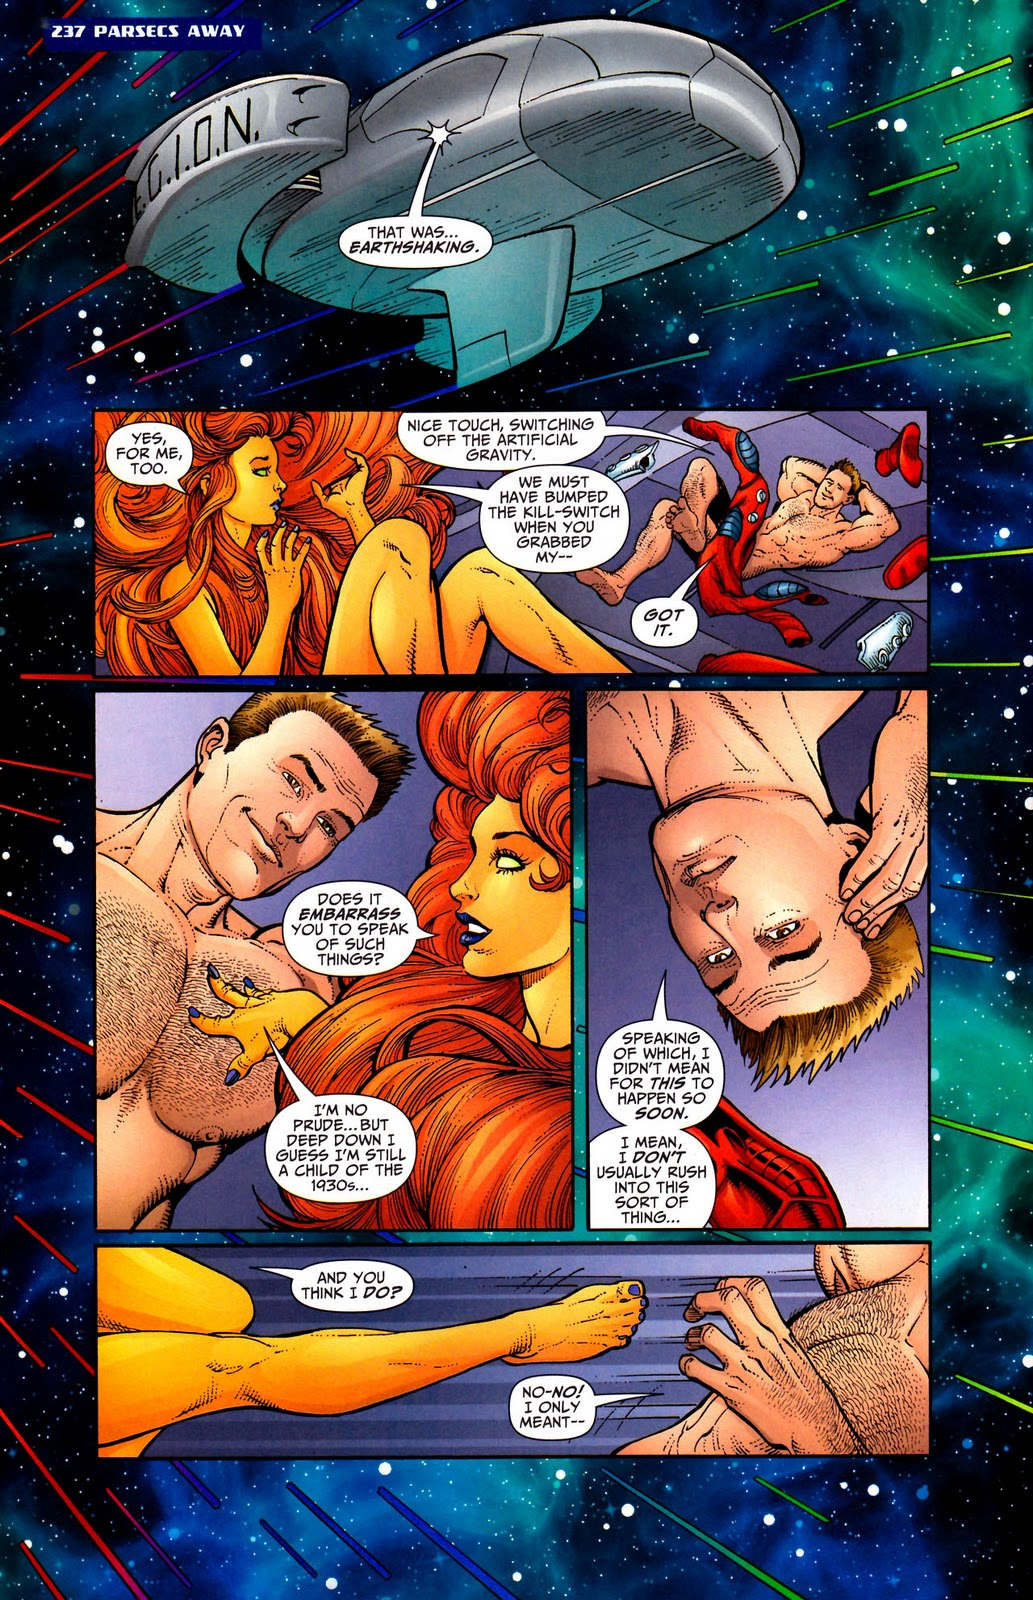 Starfire naked sex not